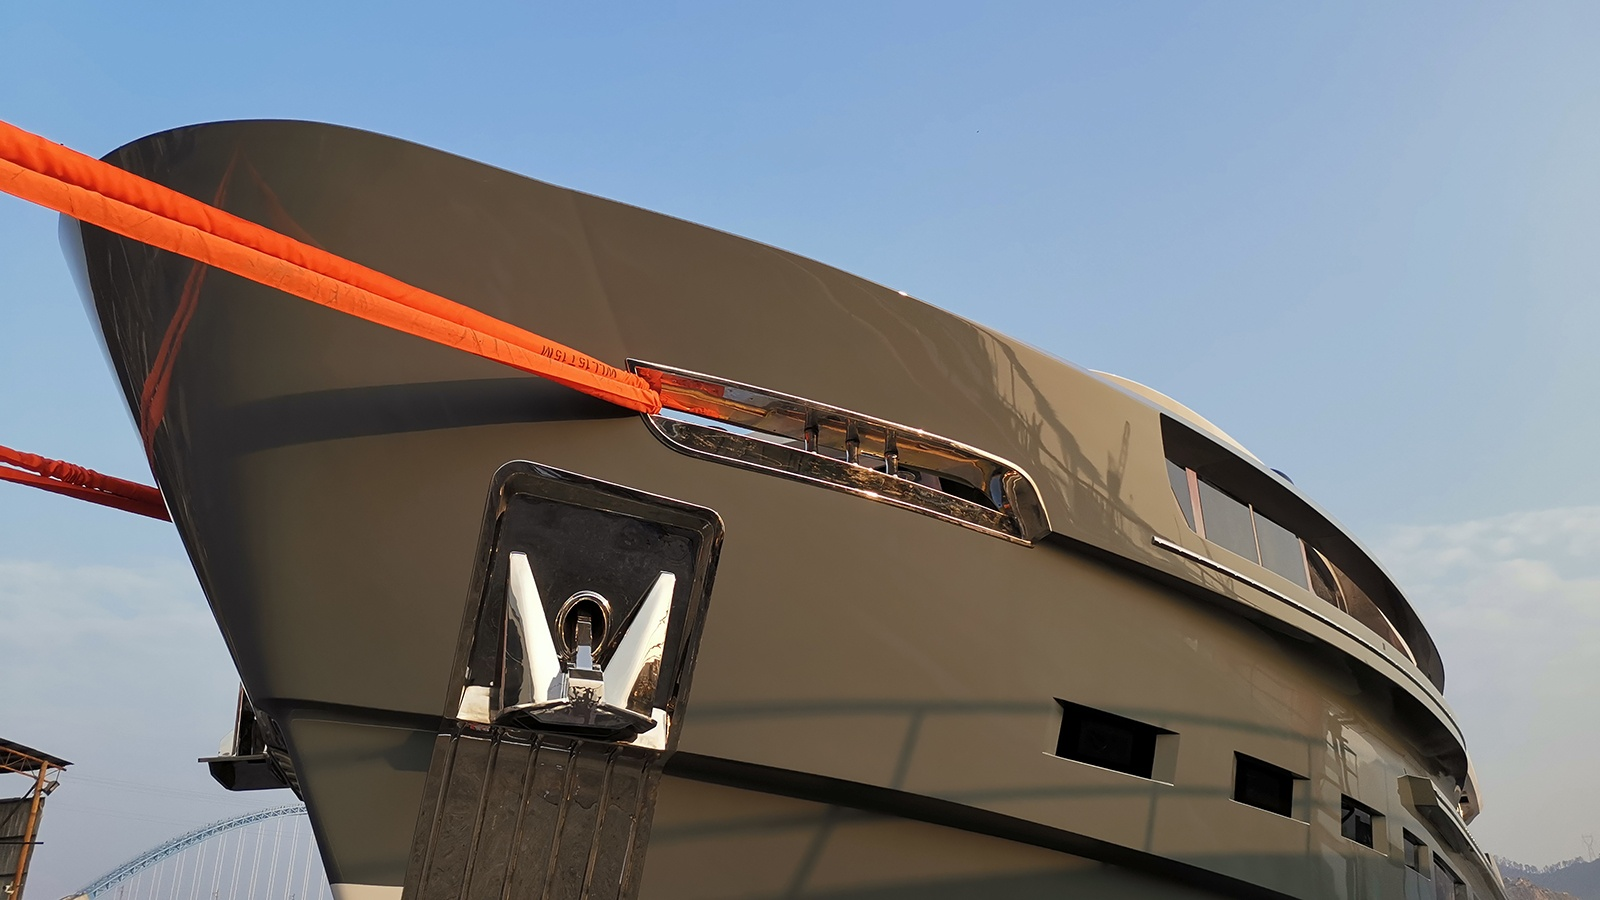 Heysea Yachts Launches First Atlantic 115 Superyacht